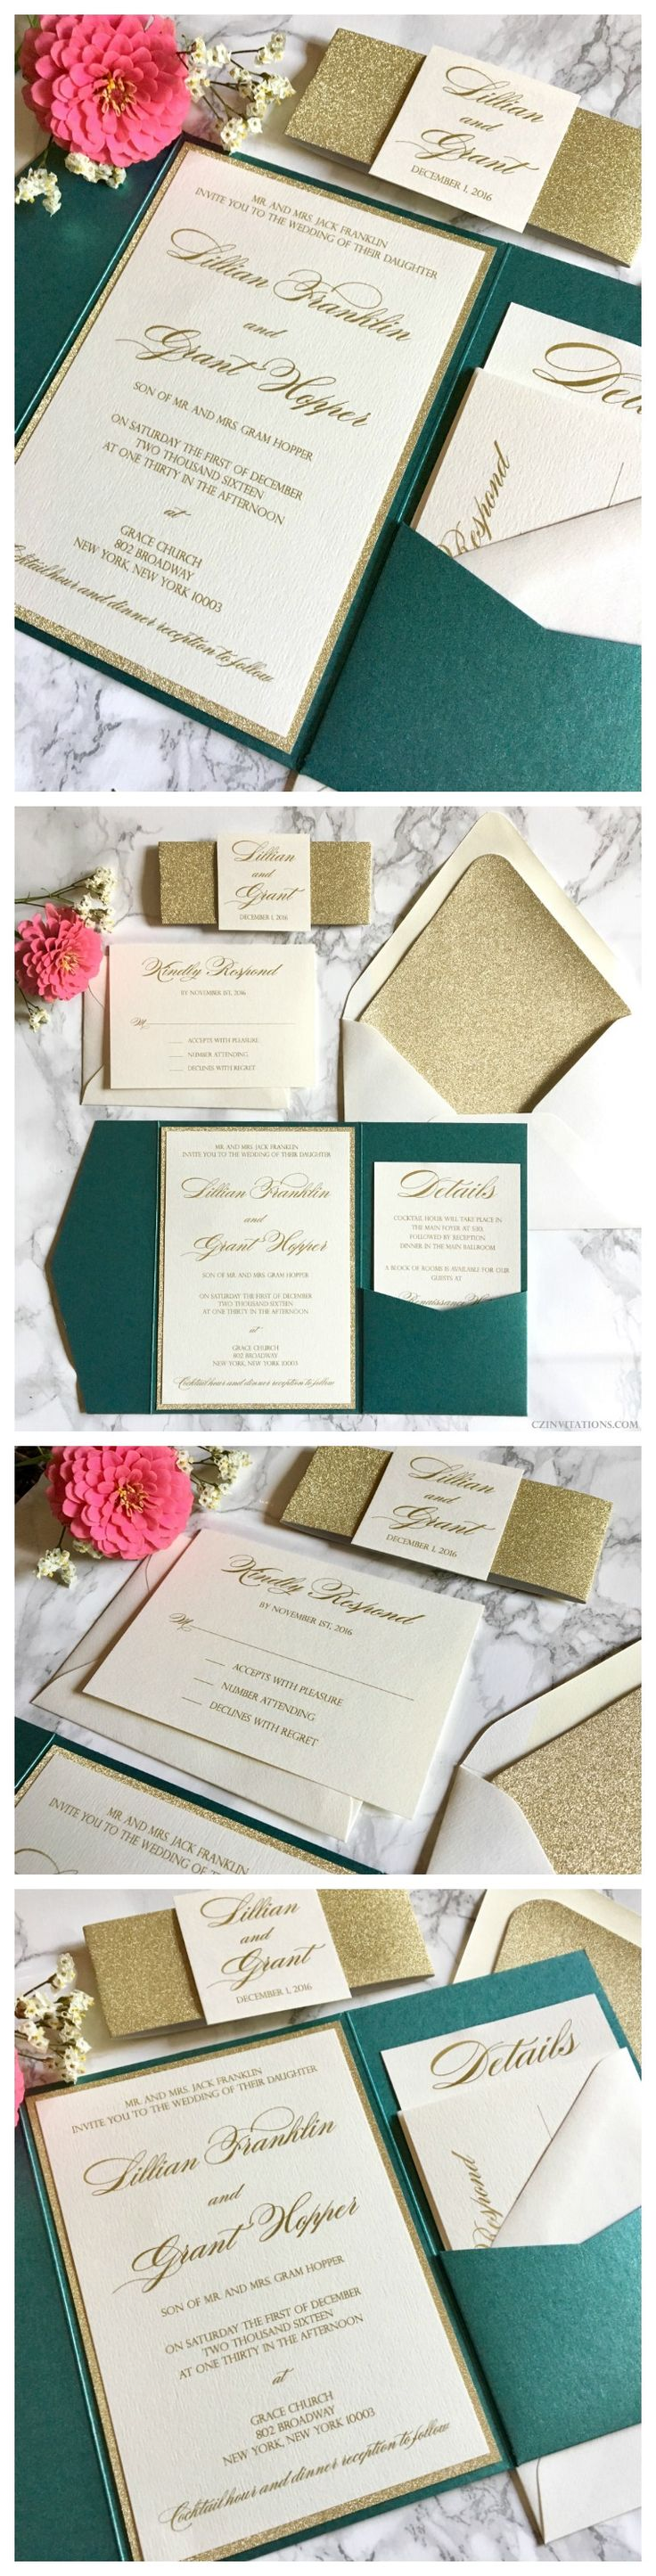 Emerald and Gold Glitter Pocket Wedding Invitation with matching Belly Band from www.CZInvitations.com. Visit us to see more colors, fonts and styles!